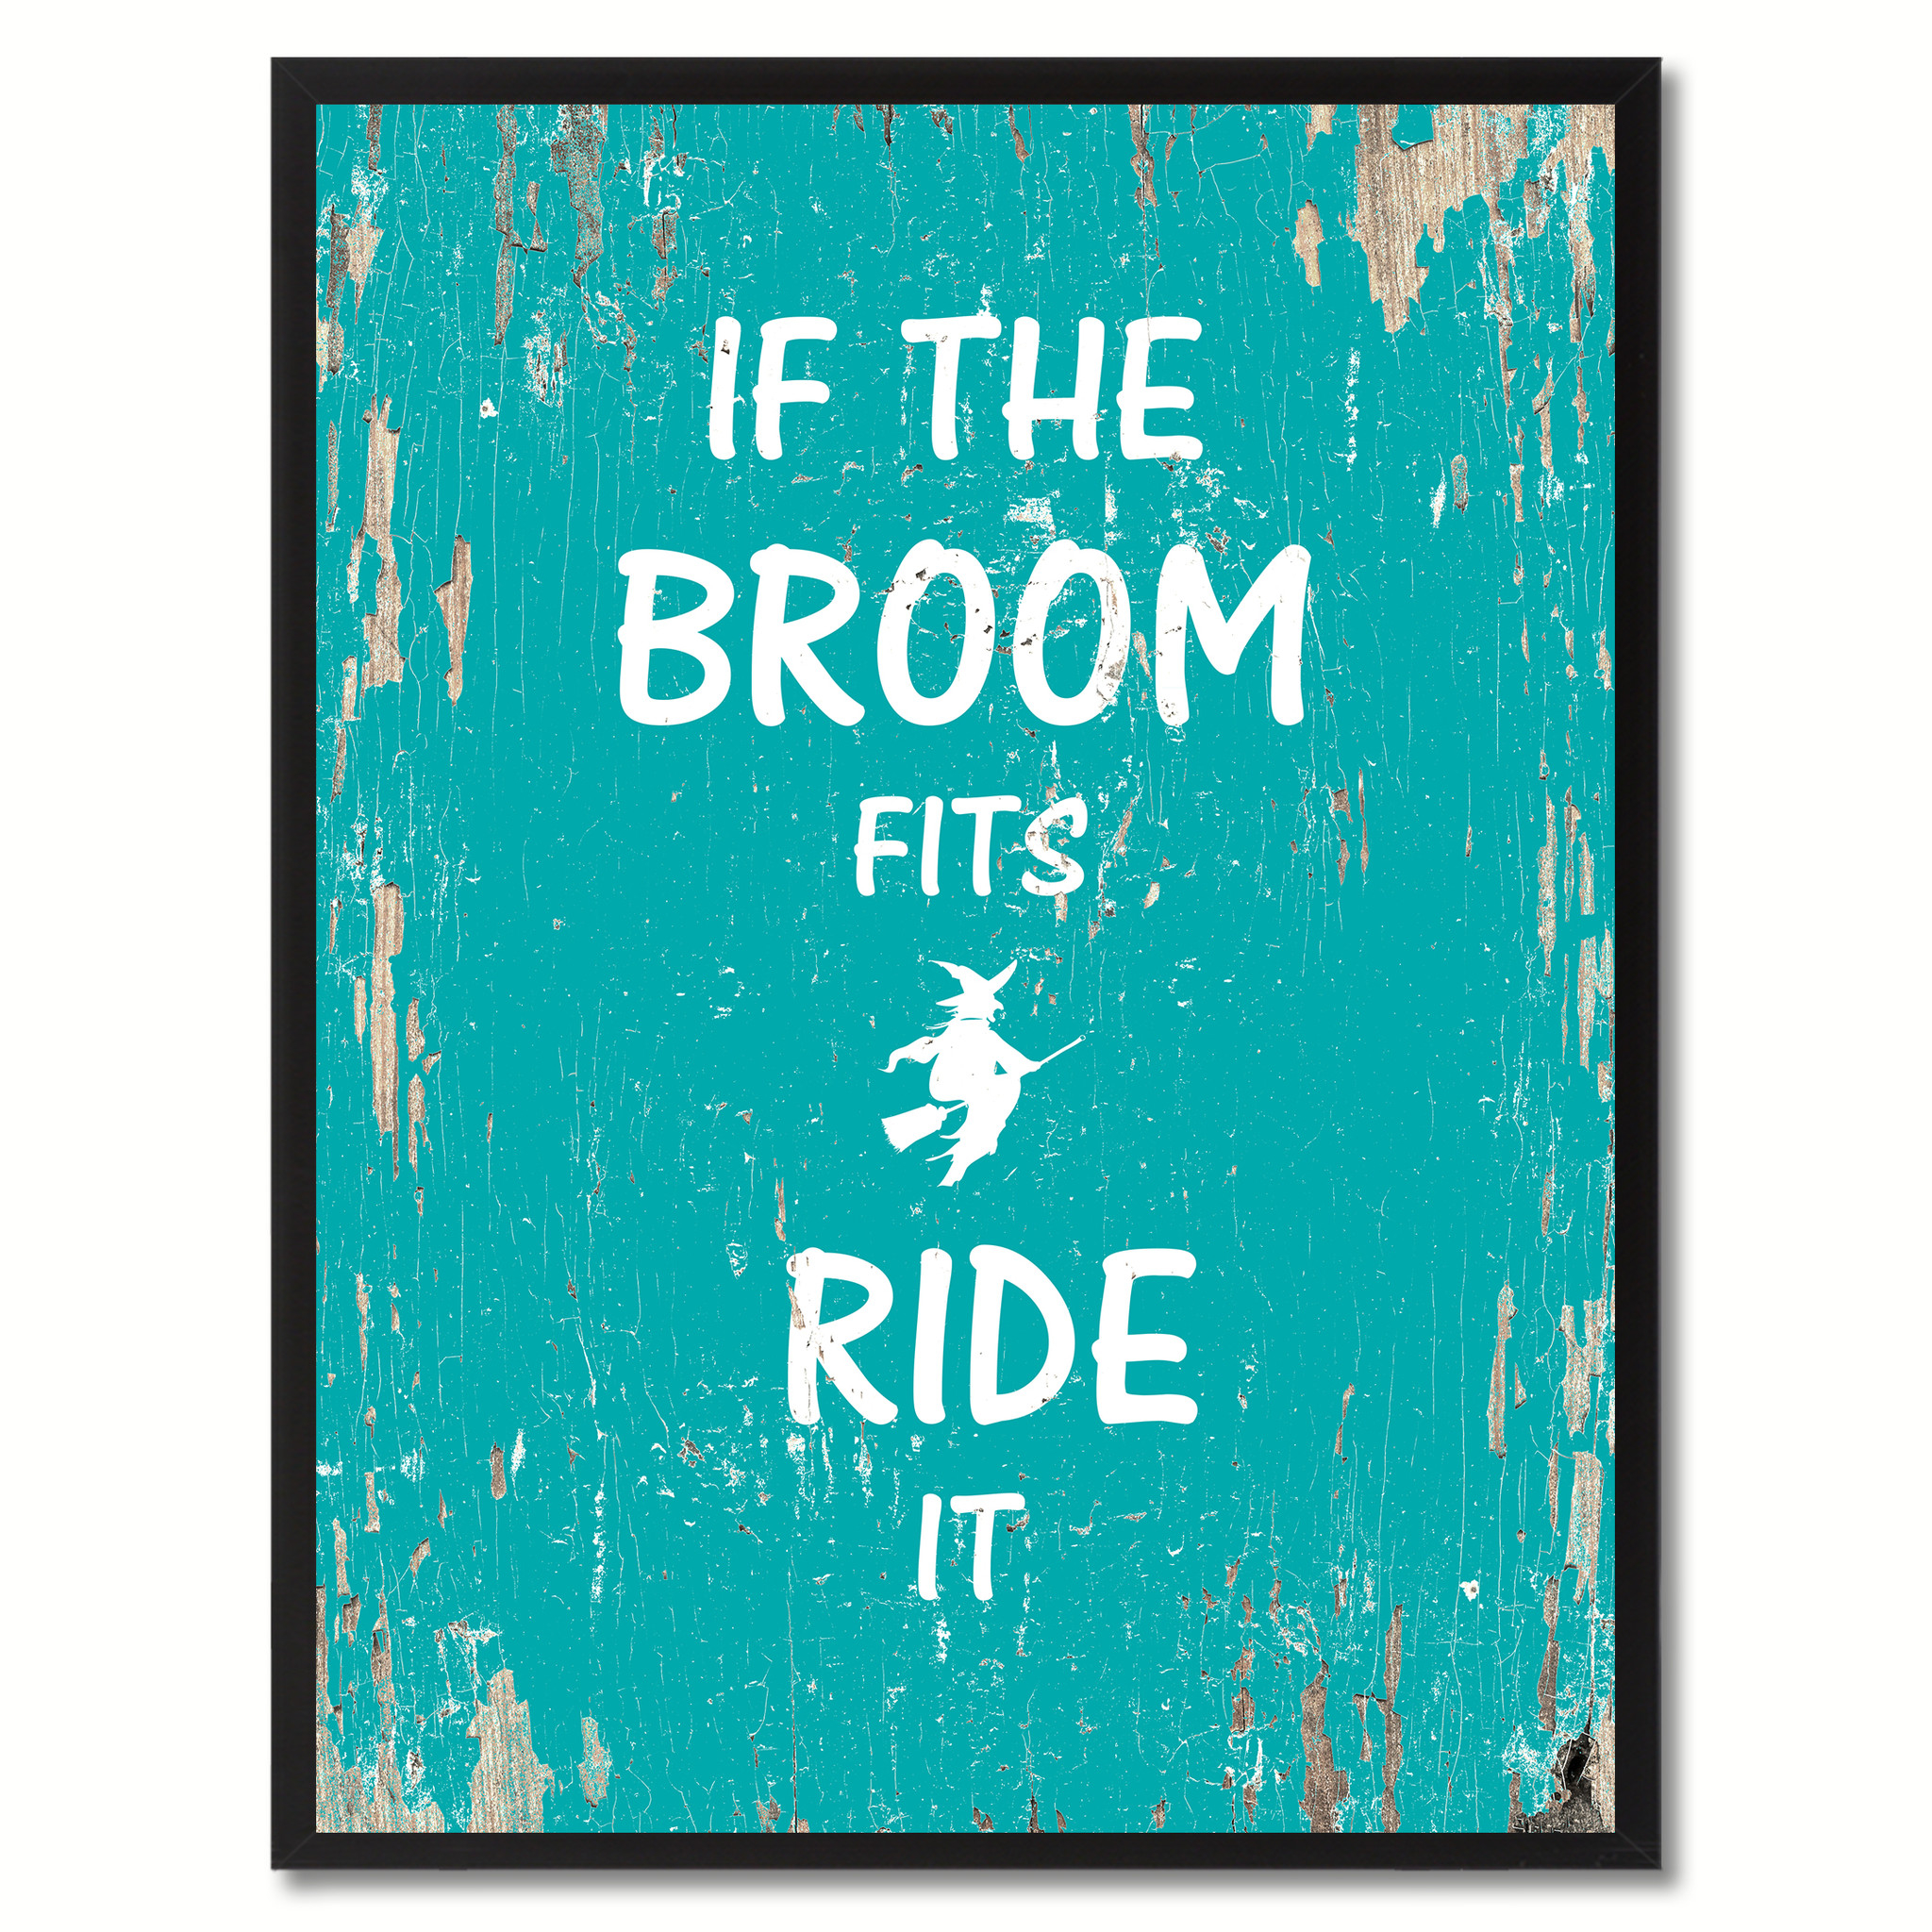 "If The Broom Fits Ride It Motivation Saying Canvas Print with Picture Frame Home Decor Wall Art Gifts - 7""x9\"""